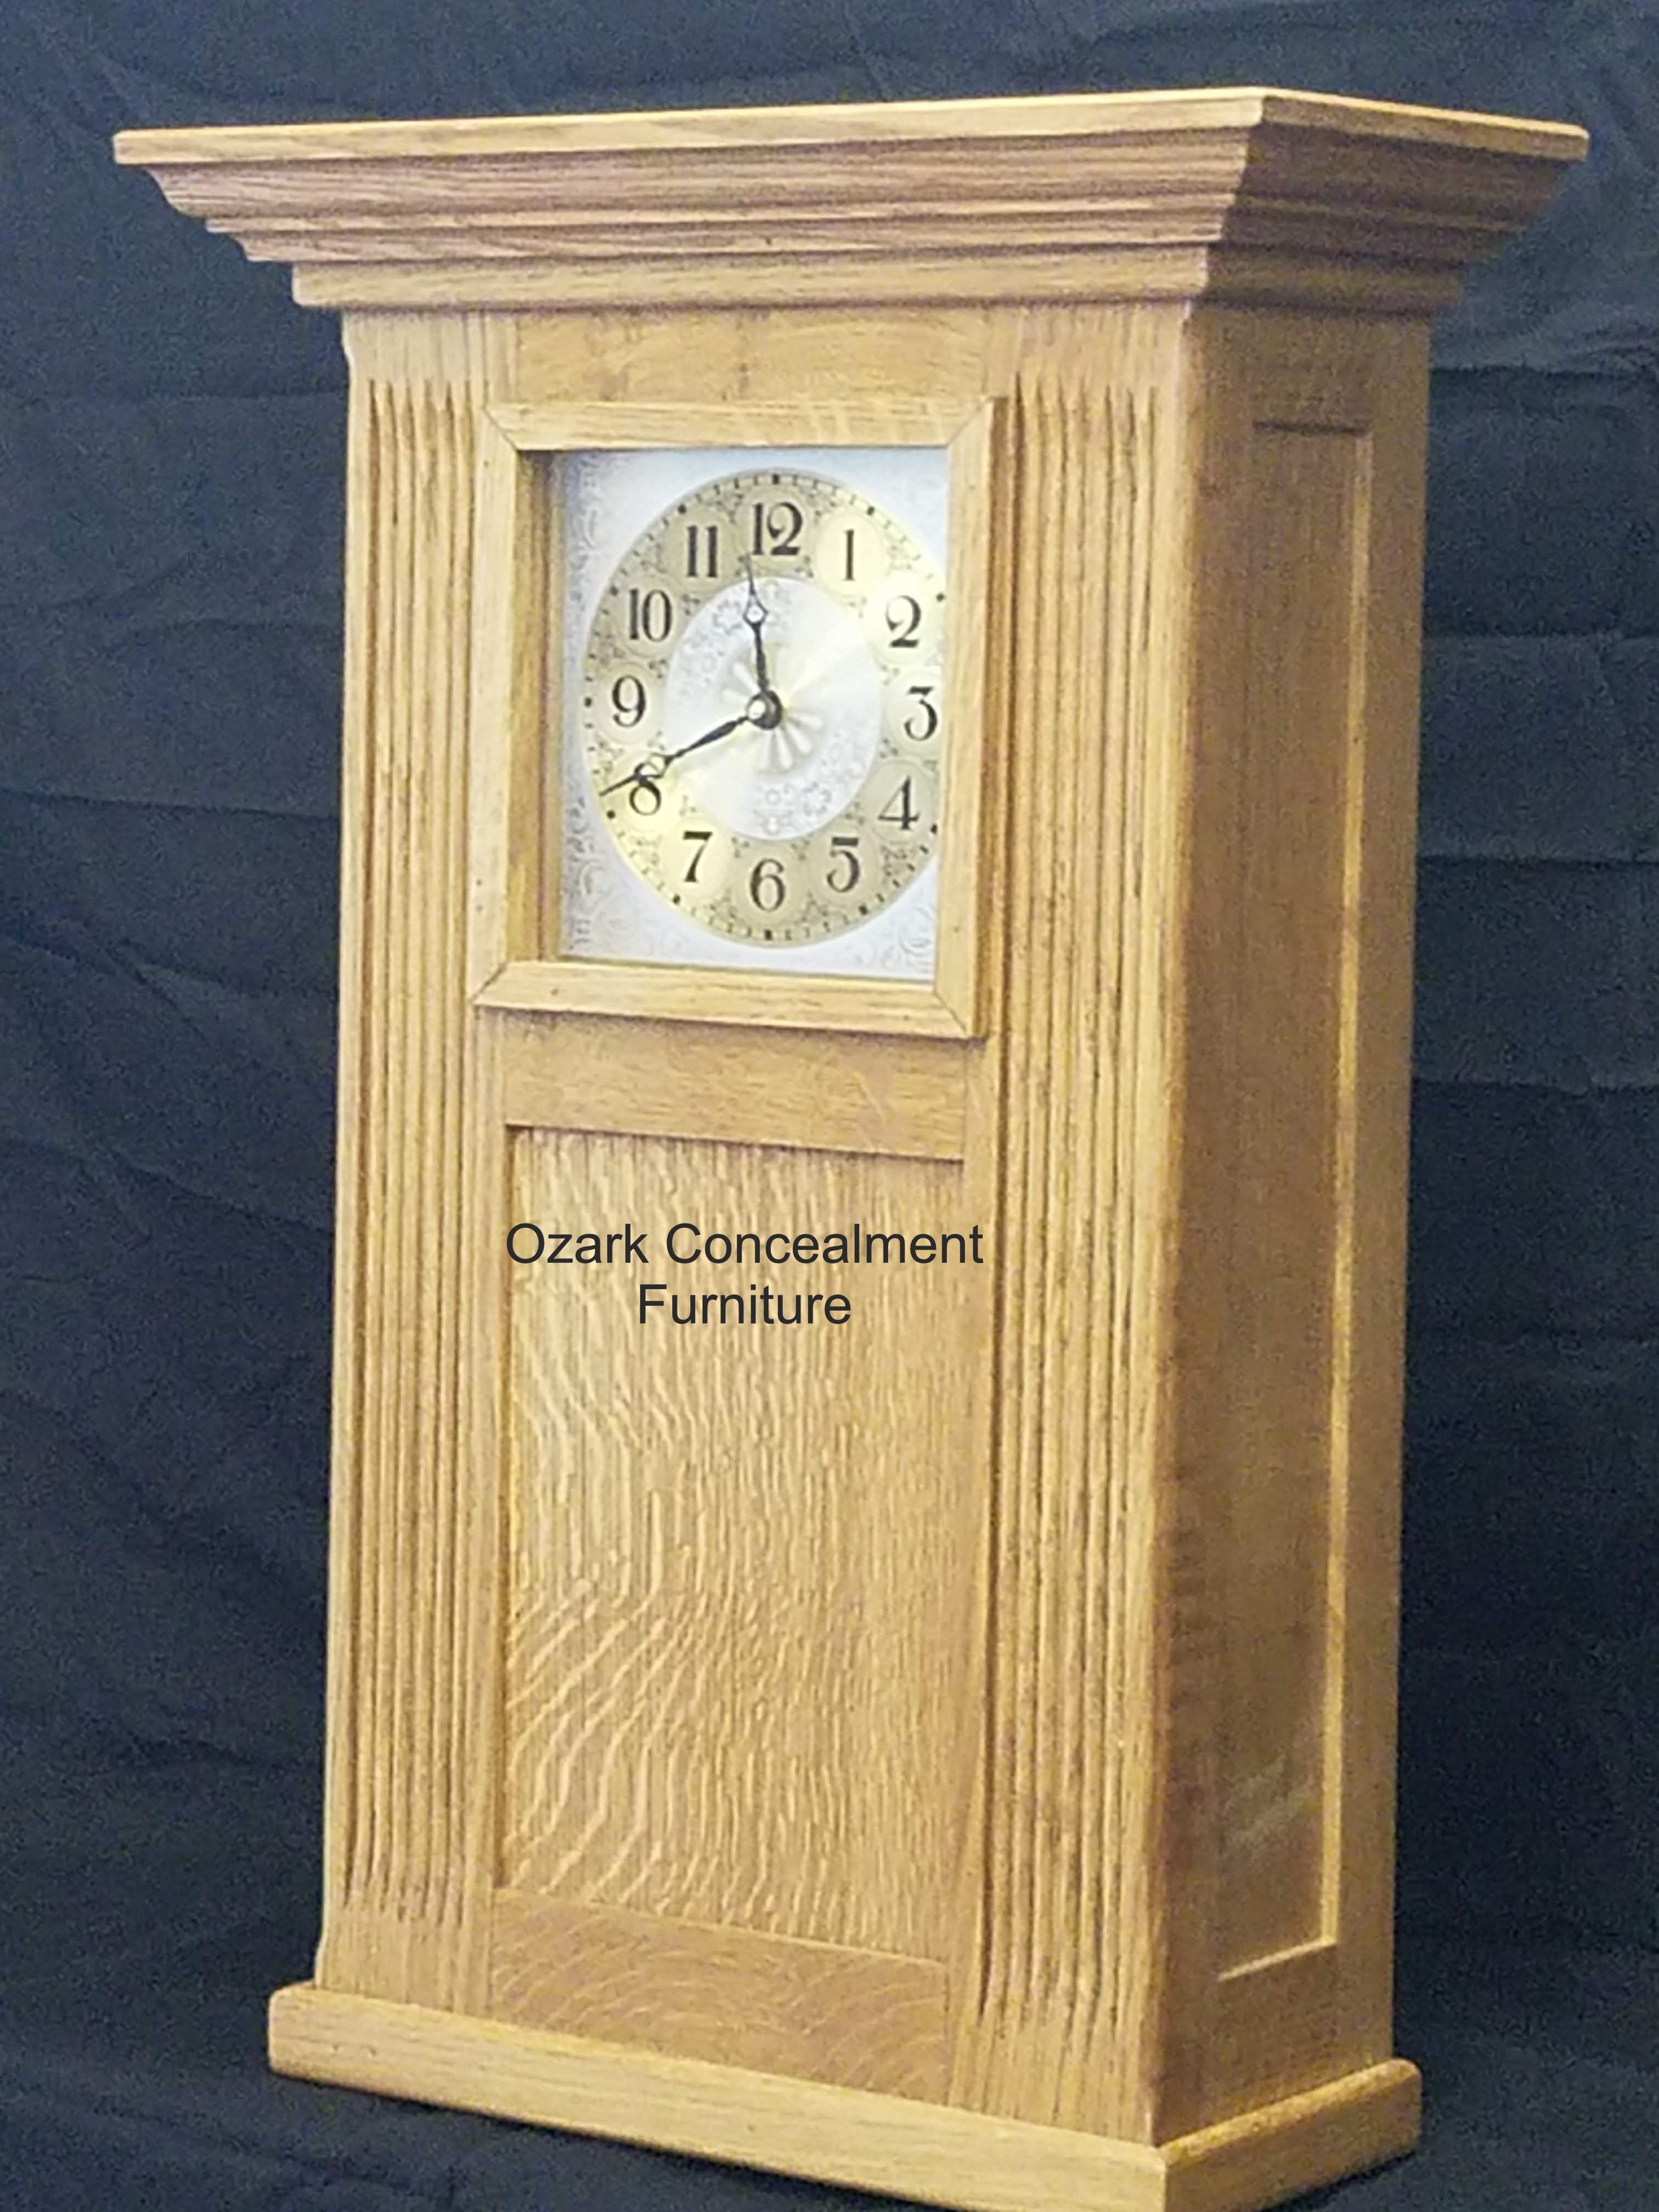 This particular concealment clock is made of quartersawn